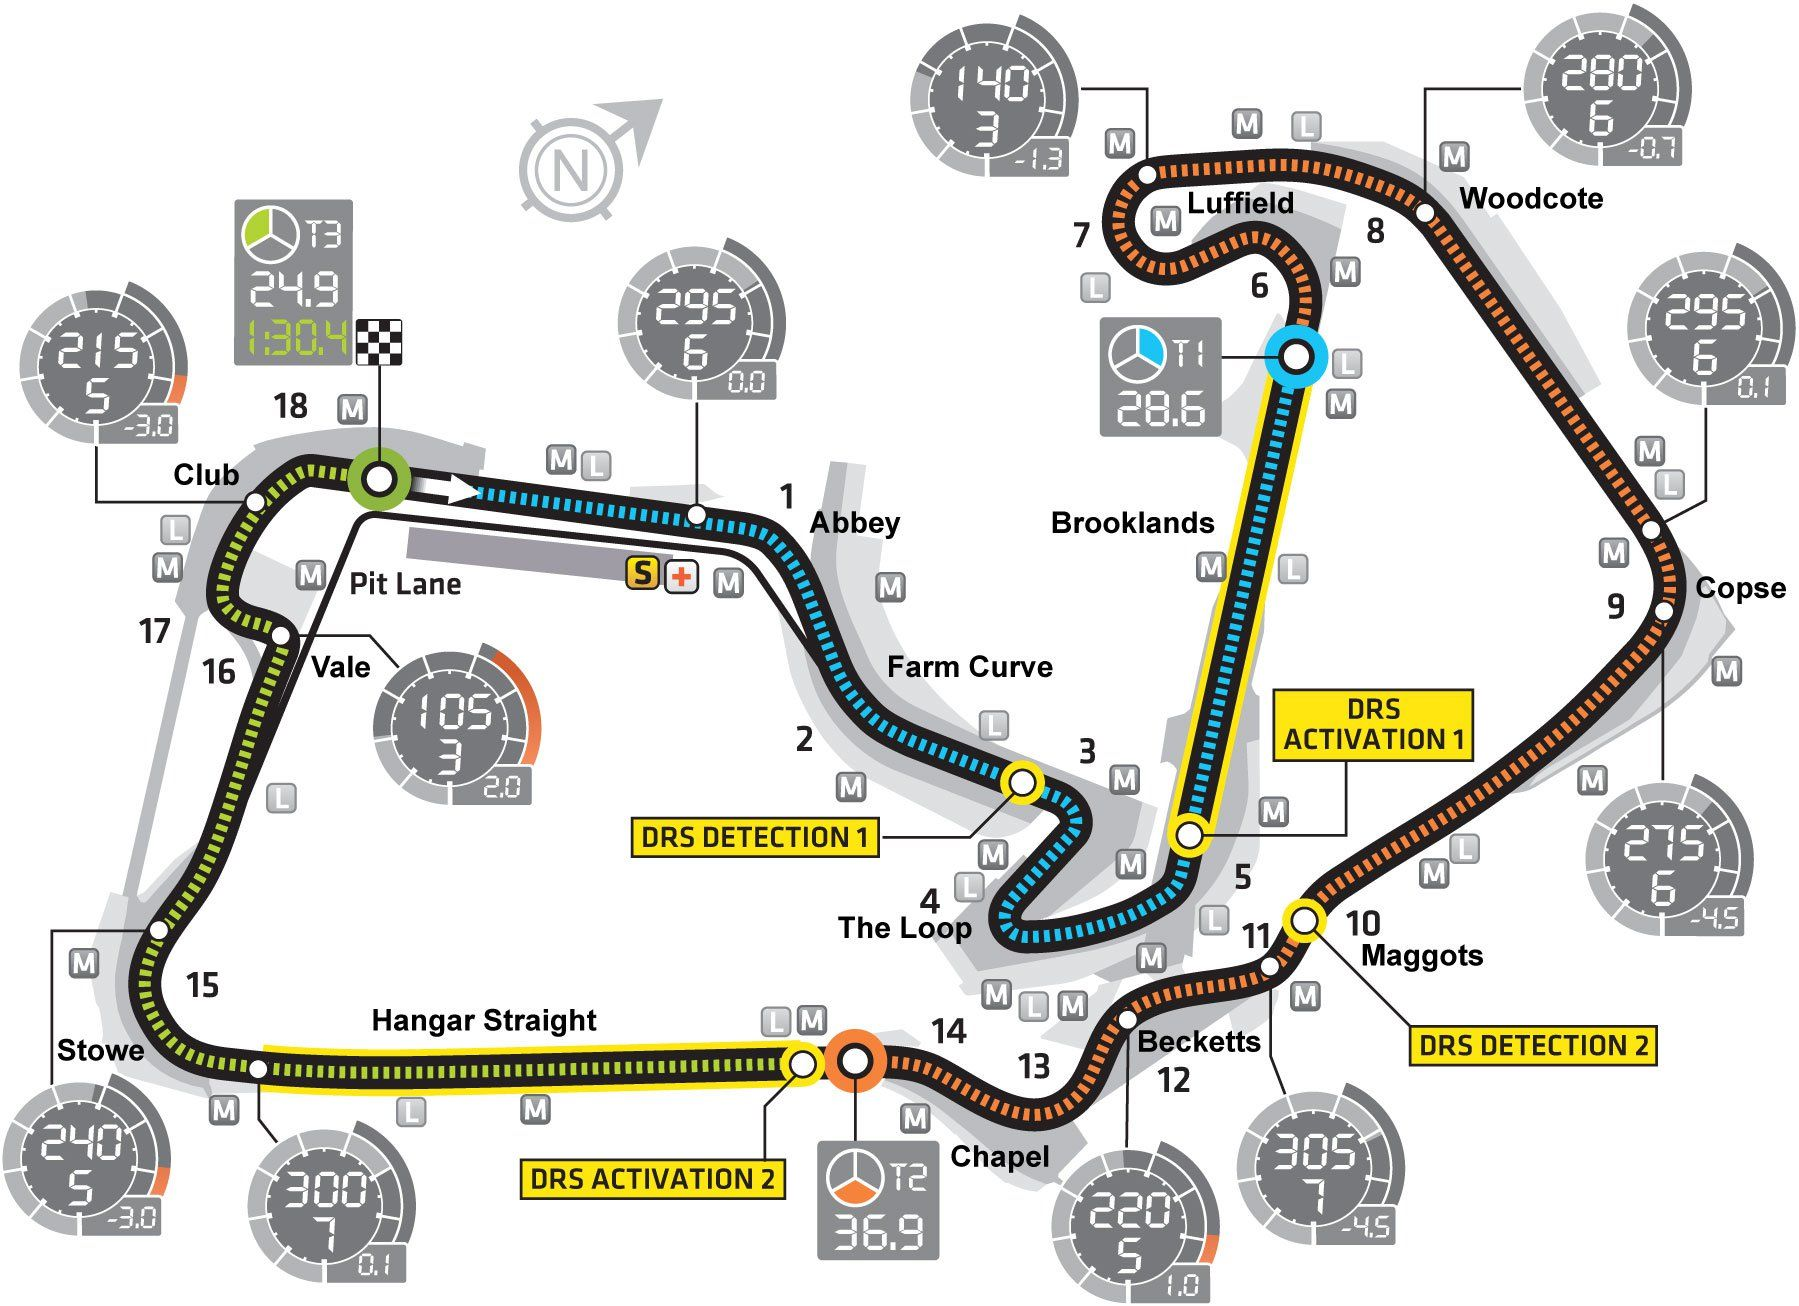 Silverstone Circuit | Circuitos | Pinterest | Circuits, F1 and Race ...